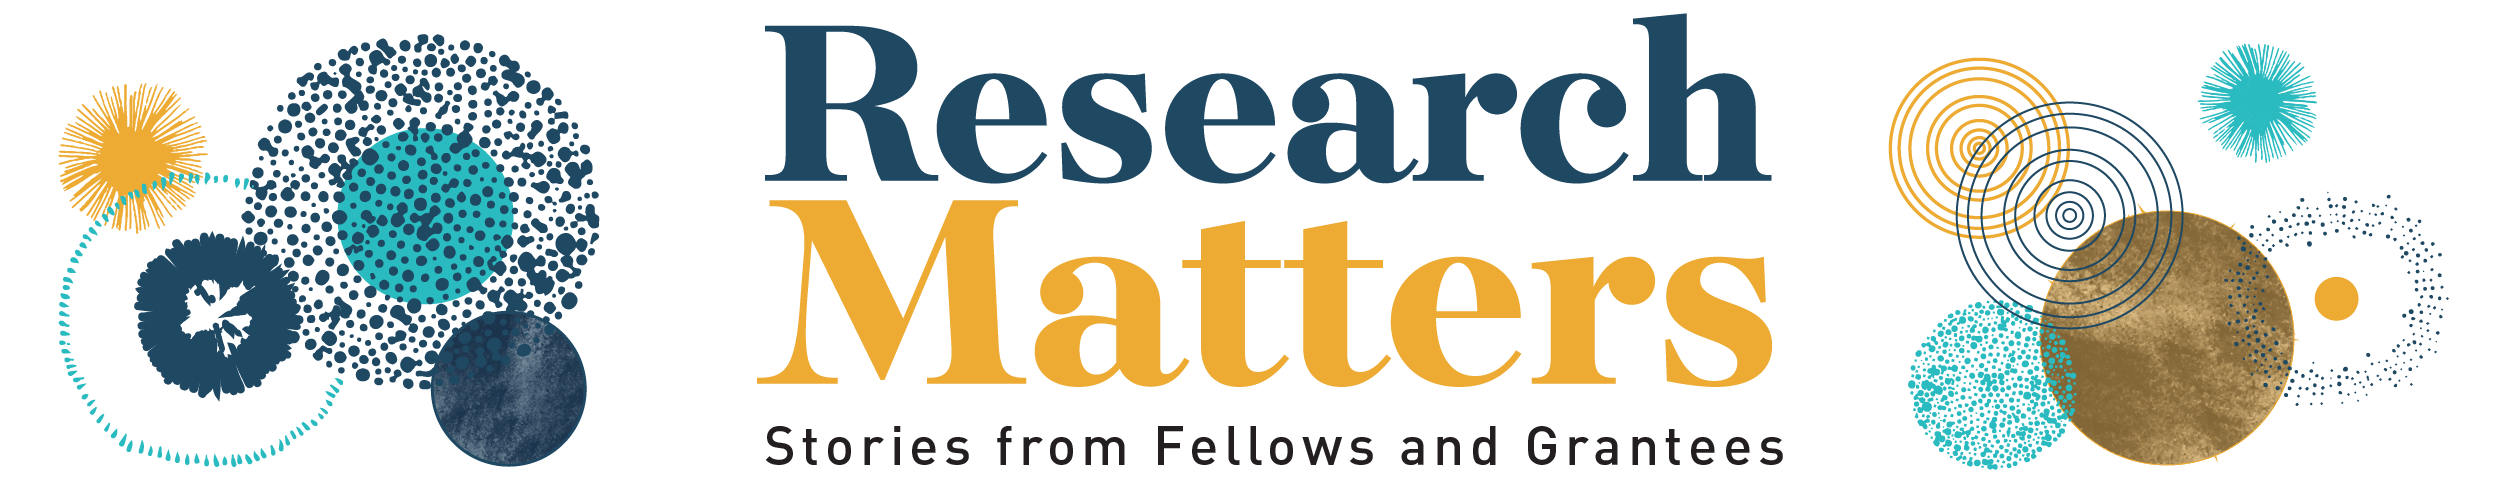 Research Matters logo